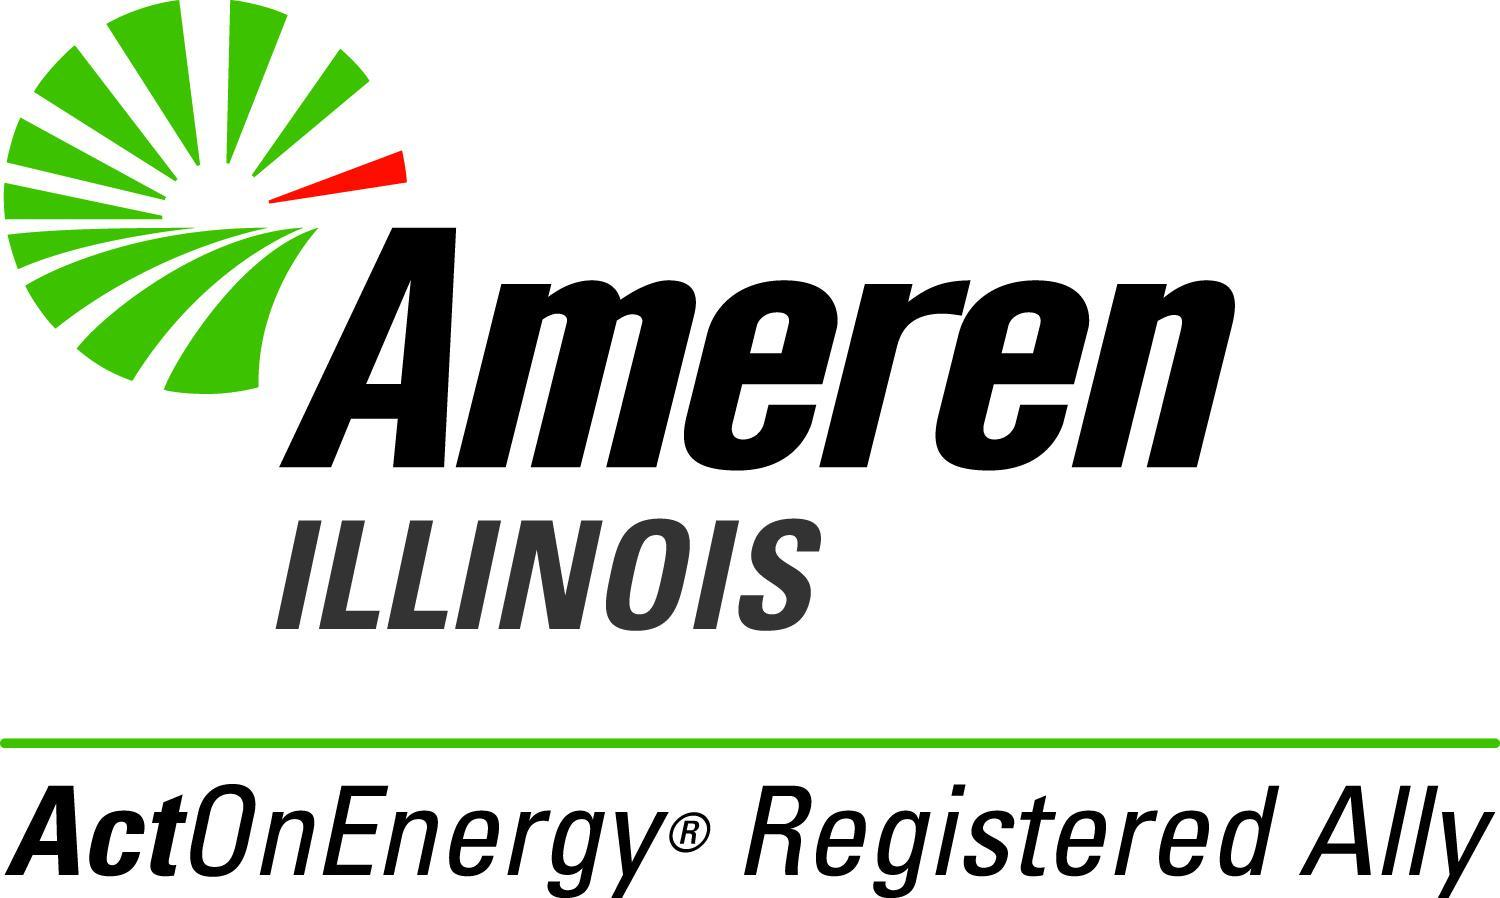 Assured Insulation Solutions is your ActOnEnergy Registered Ally with Ameren Illinois.